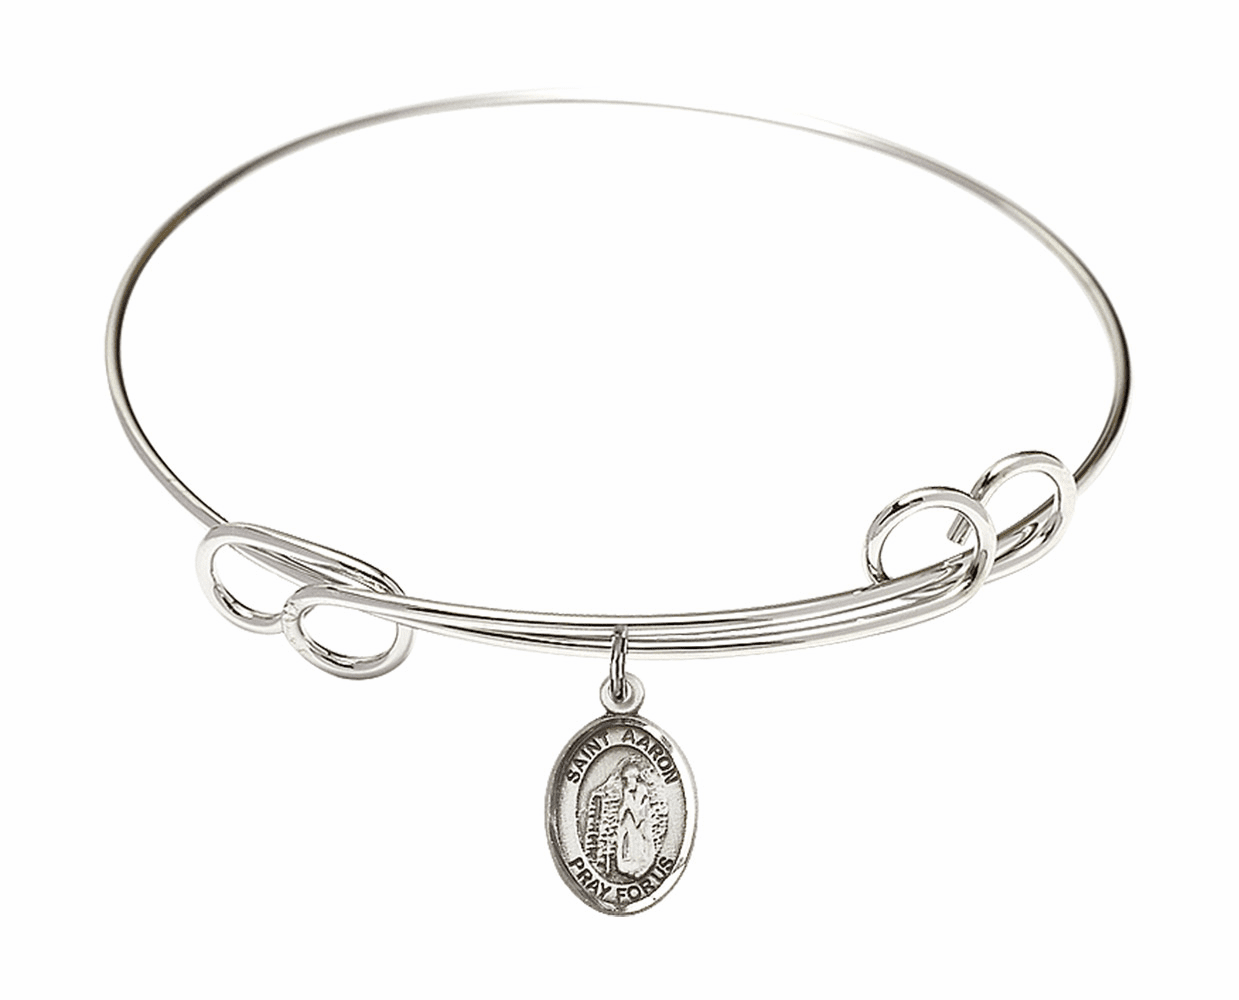 Round Loop St Aaron Bangle Charm Bracelet by Bliss